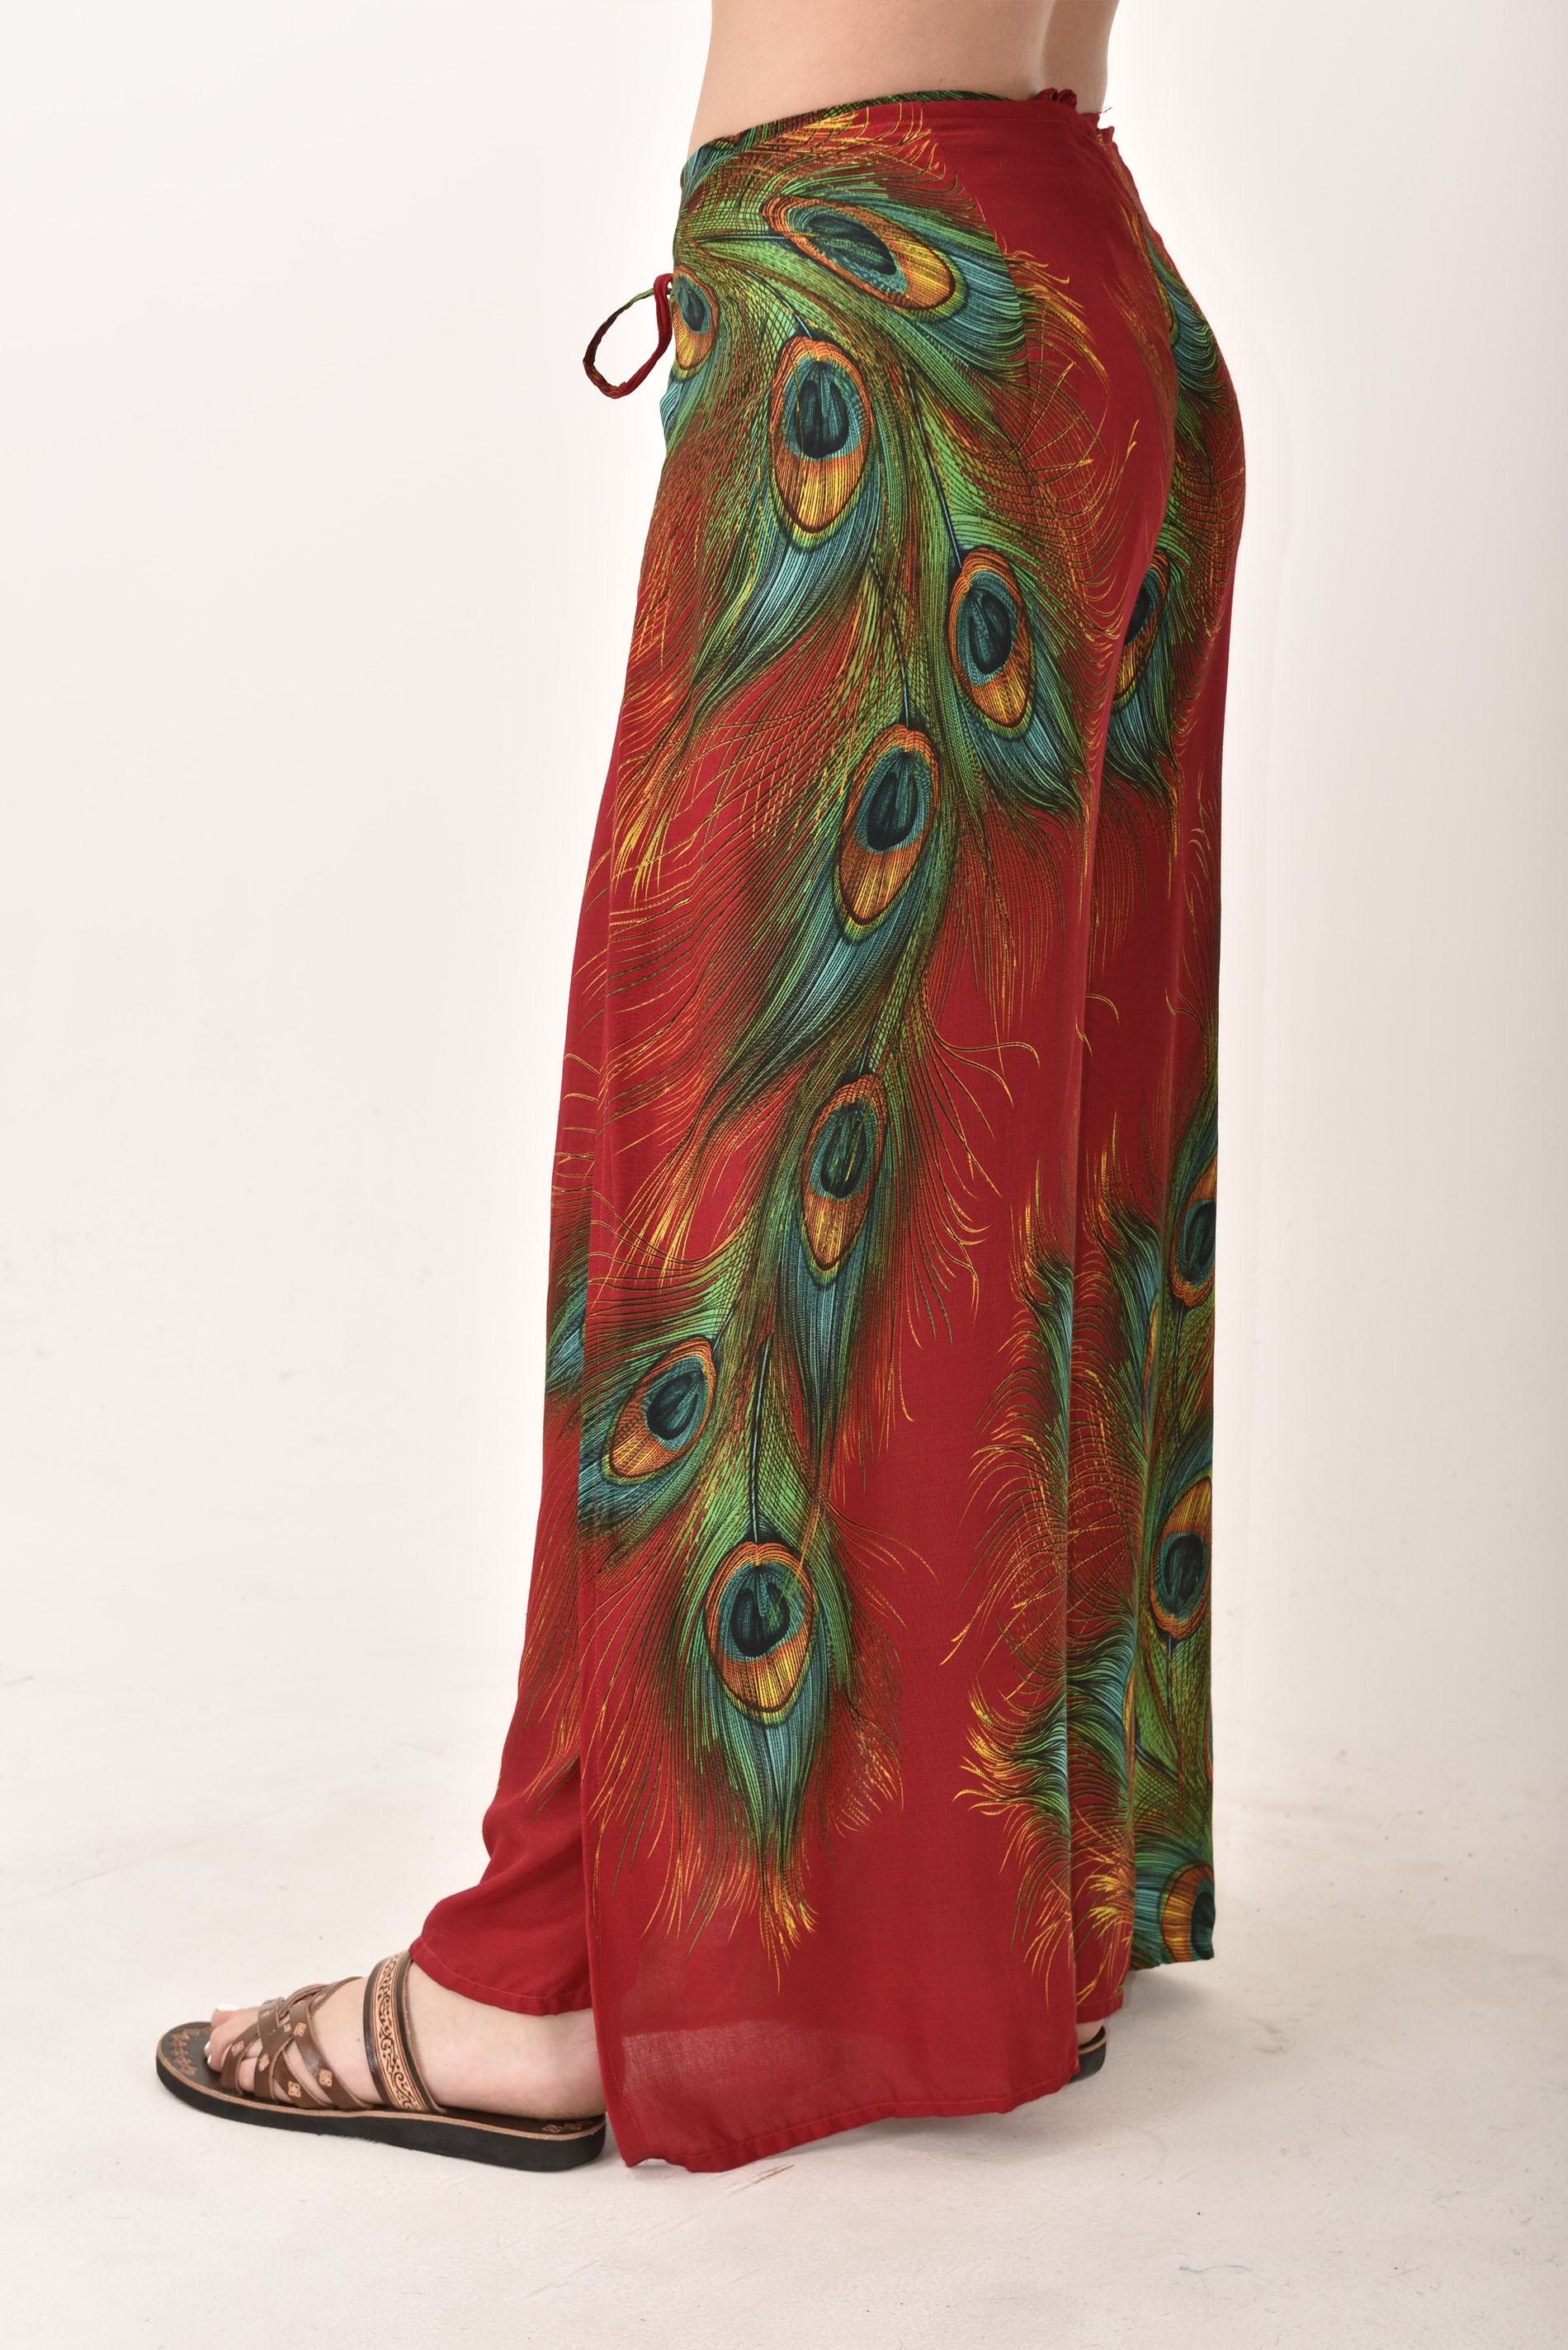 Wrap Pants Peacock Print, Red - 4504R